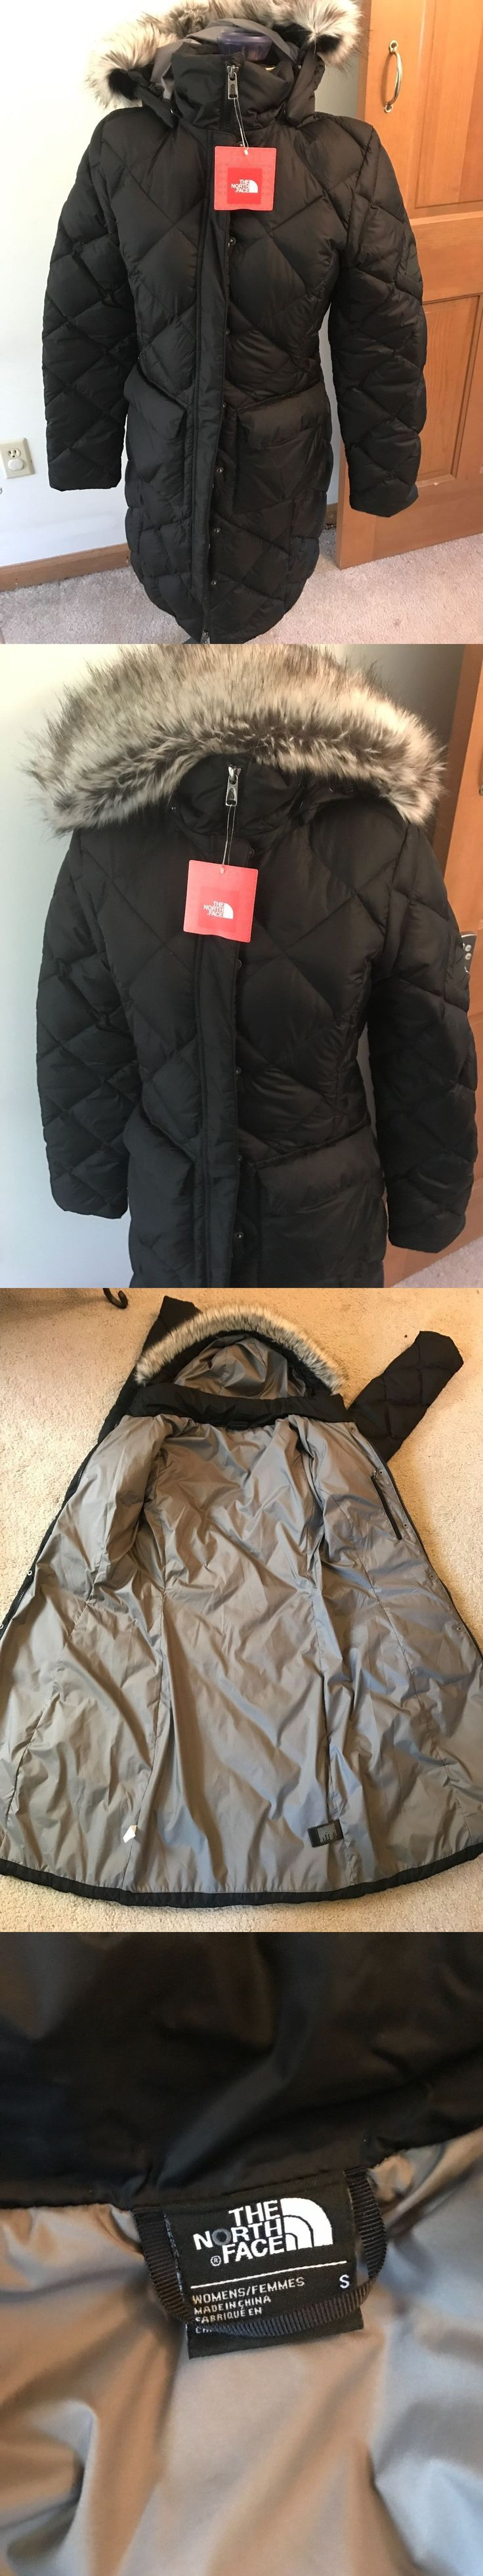 Coats and Jackets 181365: Nwt Ladies Northface Blk Down Jacket Tnf Black Size Small Srp$320 -> BUY IT NOW ONLY: $200 on eBay!